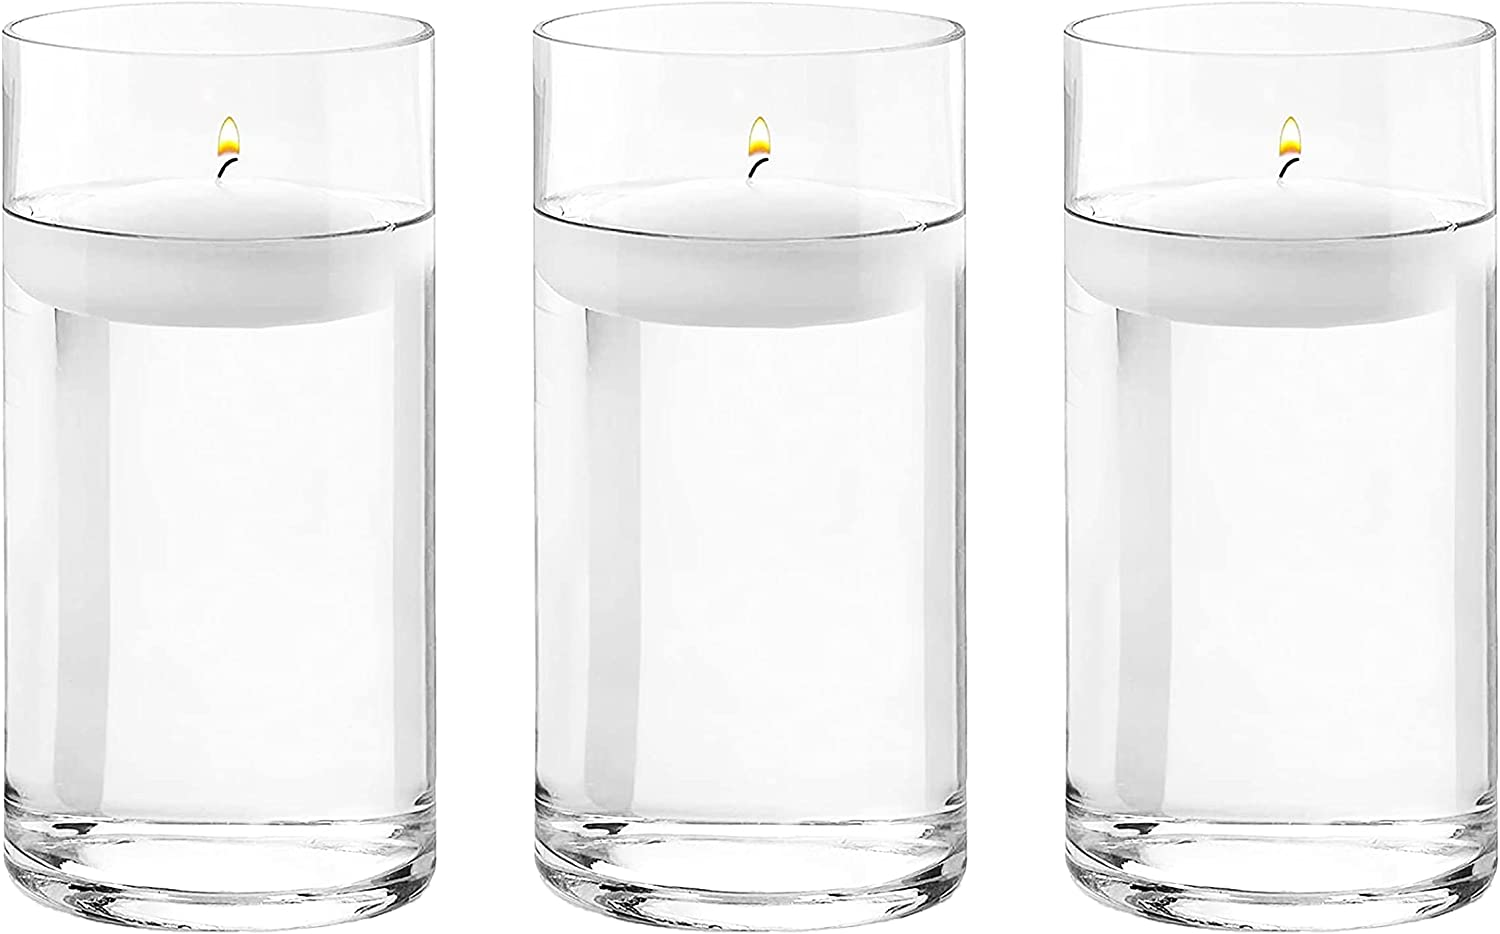 3 Pack 8 Inches Tall (20 cm) Clear Glass Cylinder vases,Centerpiece Flower Vase,Floating Candle Holder for Home & Garden Decor, Wedding, Party.